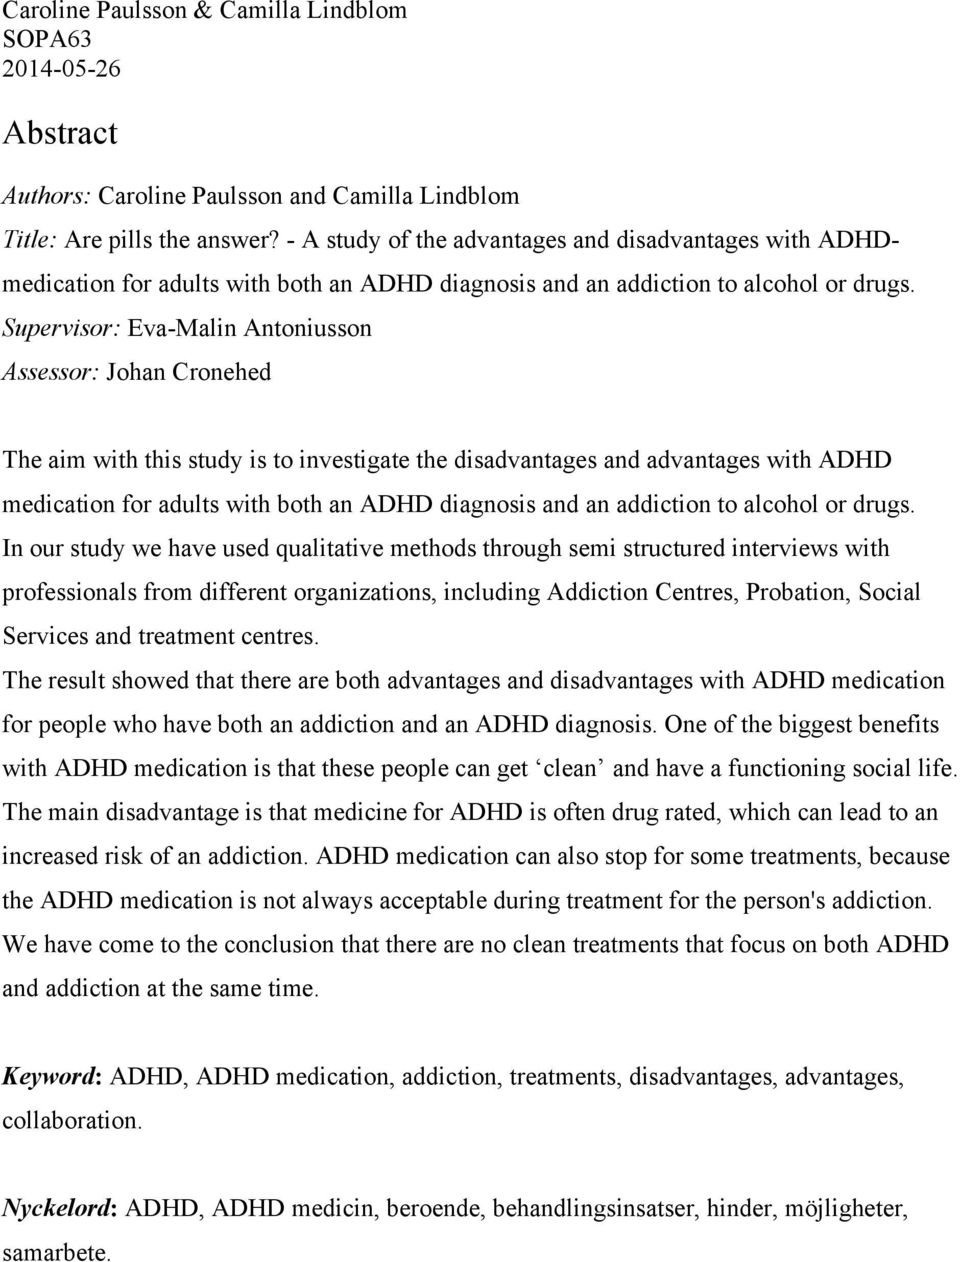 Supervisor: Eva-Malin Antoniusson Assessor: Johan Cronehed The aim with this study is to investigate the disadvantages and advantages with ADHD medication for adults with both an ADHD diagnosis and